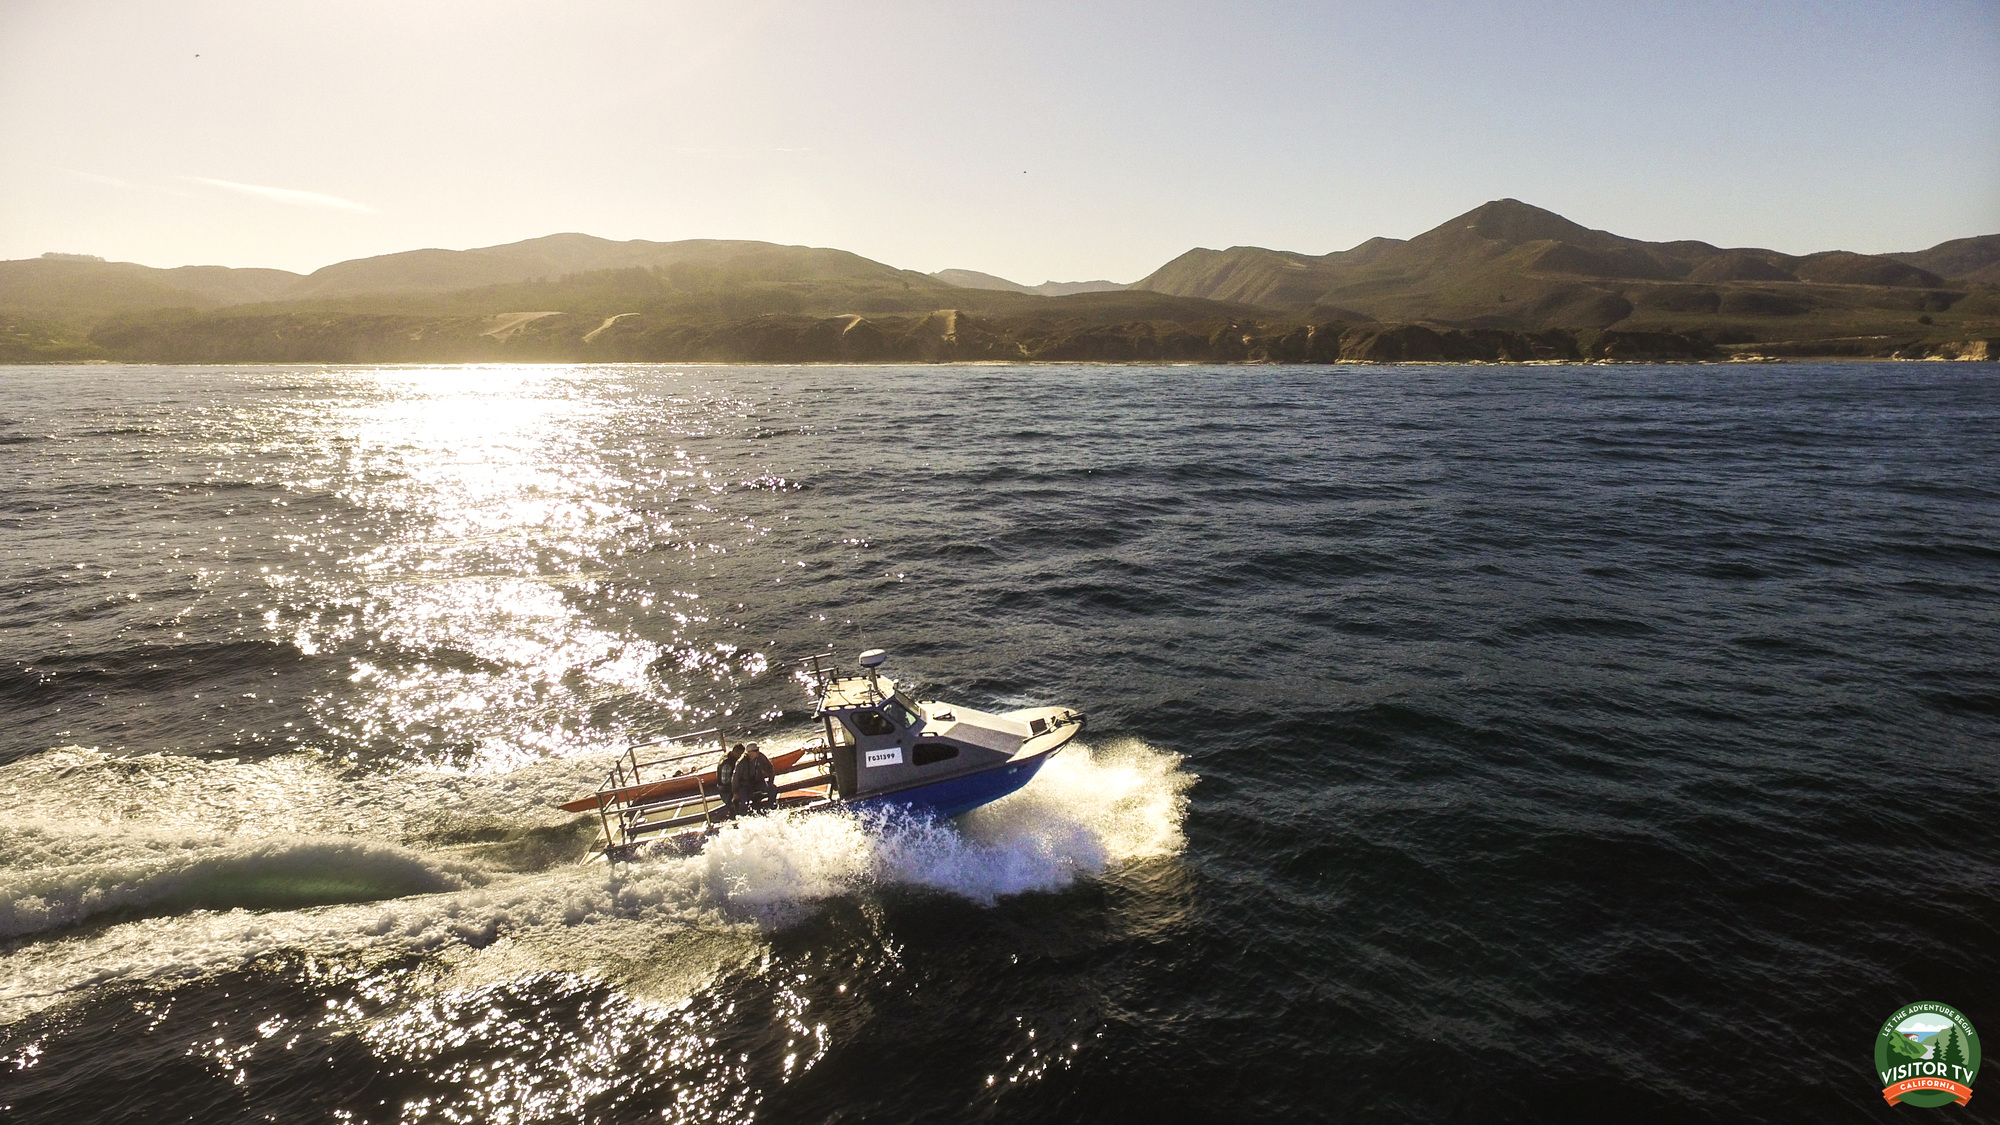 A day of fishing on Morro Bay with Pacific Charters